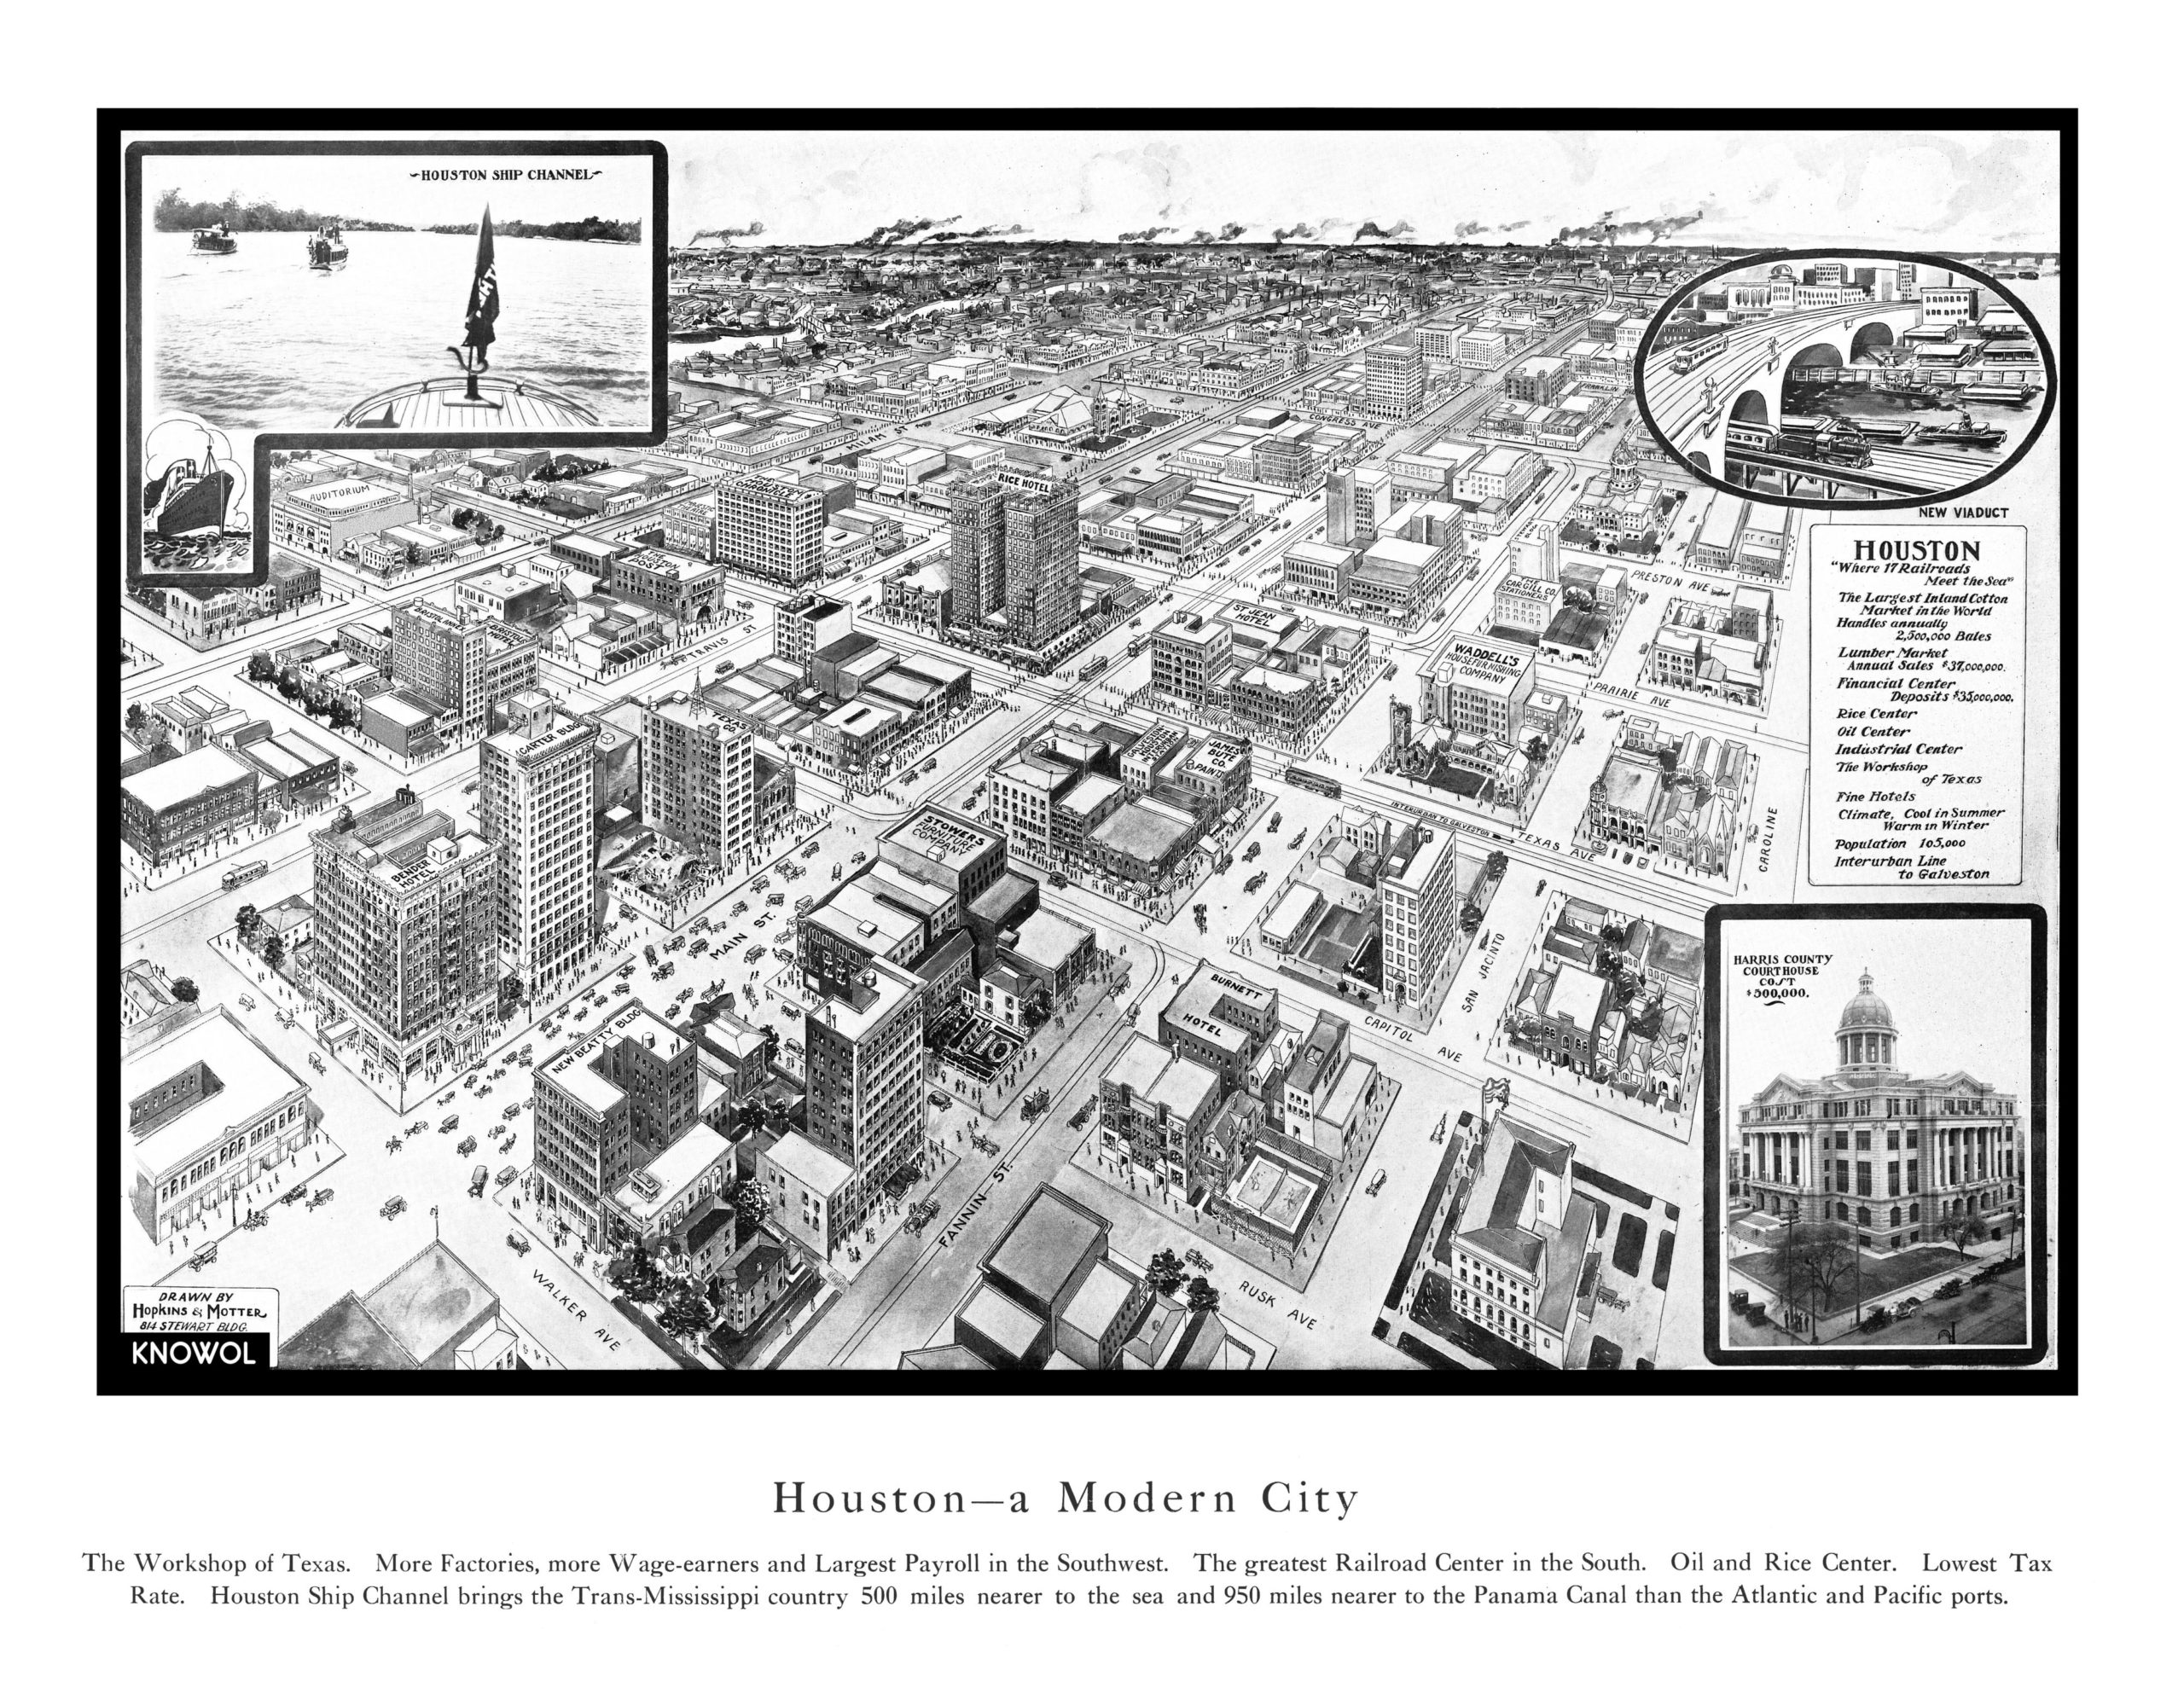 Amazing old map of Houston, Texas from 1912 - KNOWOL on cypress tx map, aldine tx map, baytown tx map, pearland tx map, denton tx map, sharpstown tx map, bellaire tx map, tomball tx map, austin tx map, oak forest tx map, west tx map, conroe tx map, galveston tx map, buda tx map, the woodlands tx map, sugarland tx map, northwest tx map, beaumont tx map, abilene tx map, kingwood tx map,